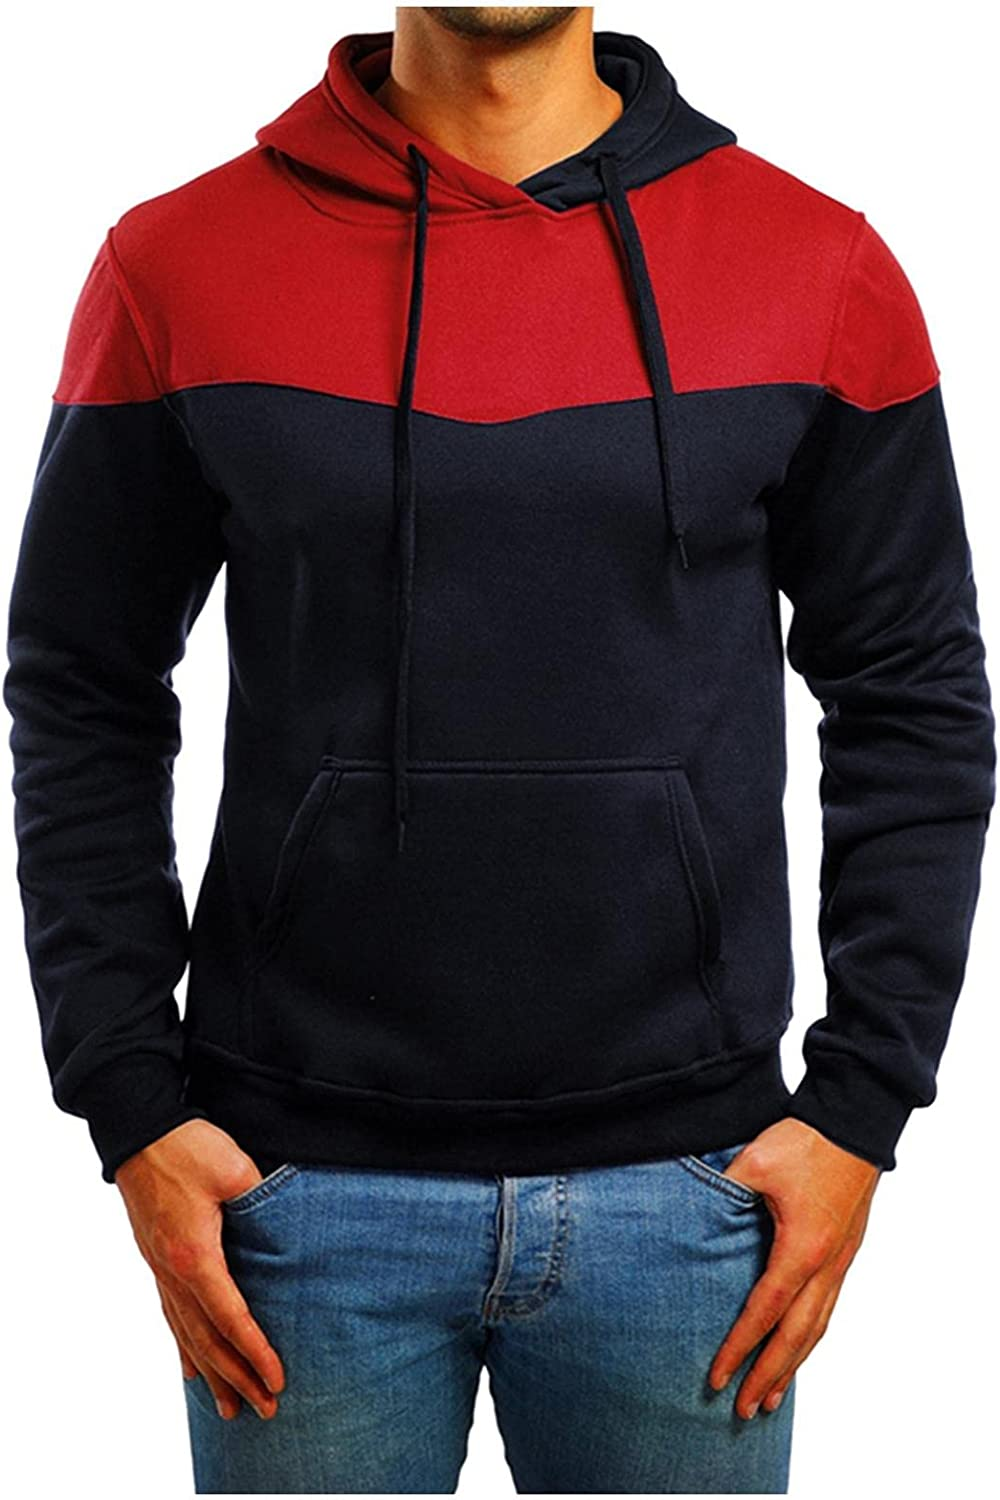 Men's Fashion Novelty Color Block Pullover Hoodie Shirts Long Sleeve Casual Sweatshirt with Pocket Sport Top